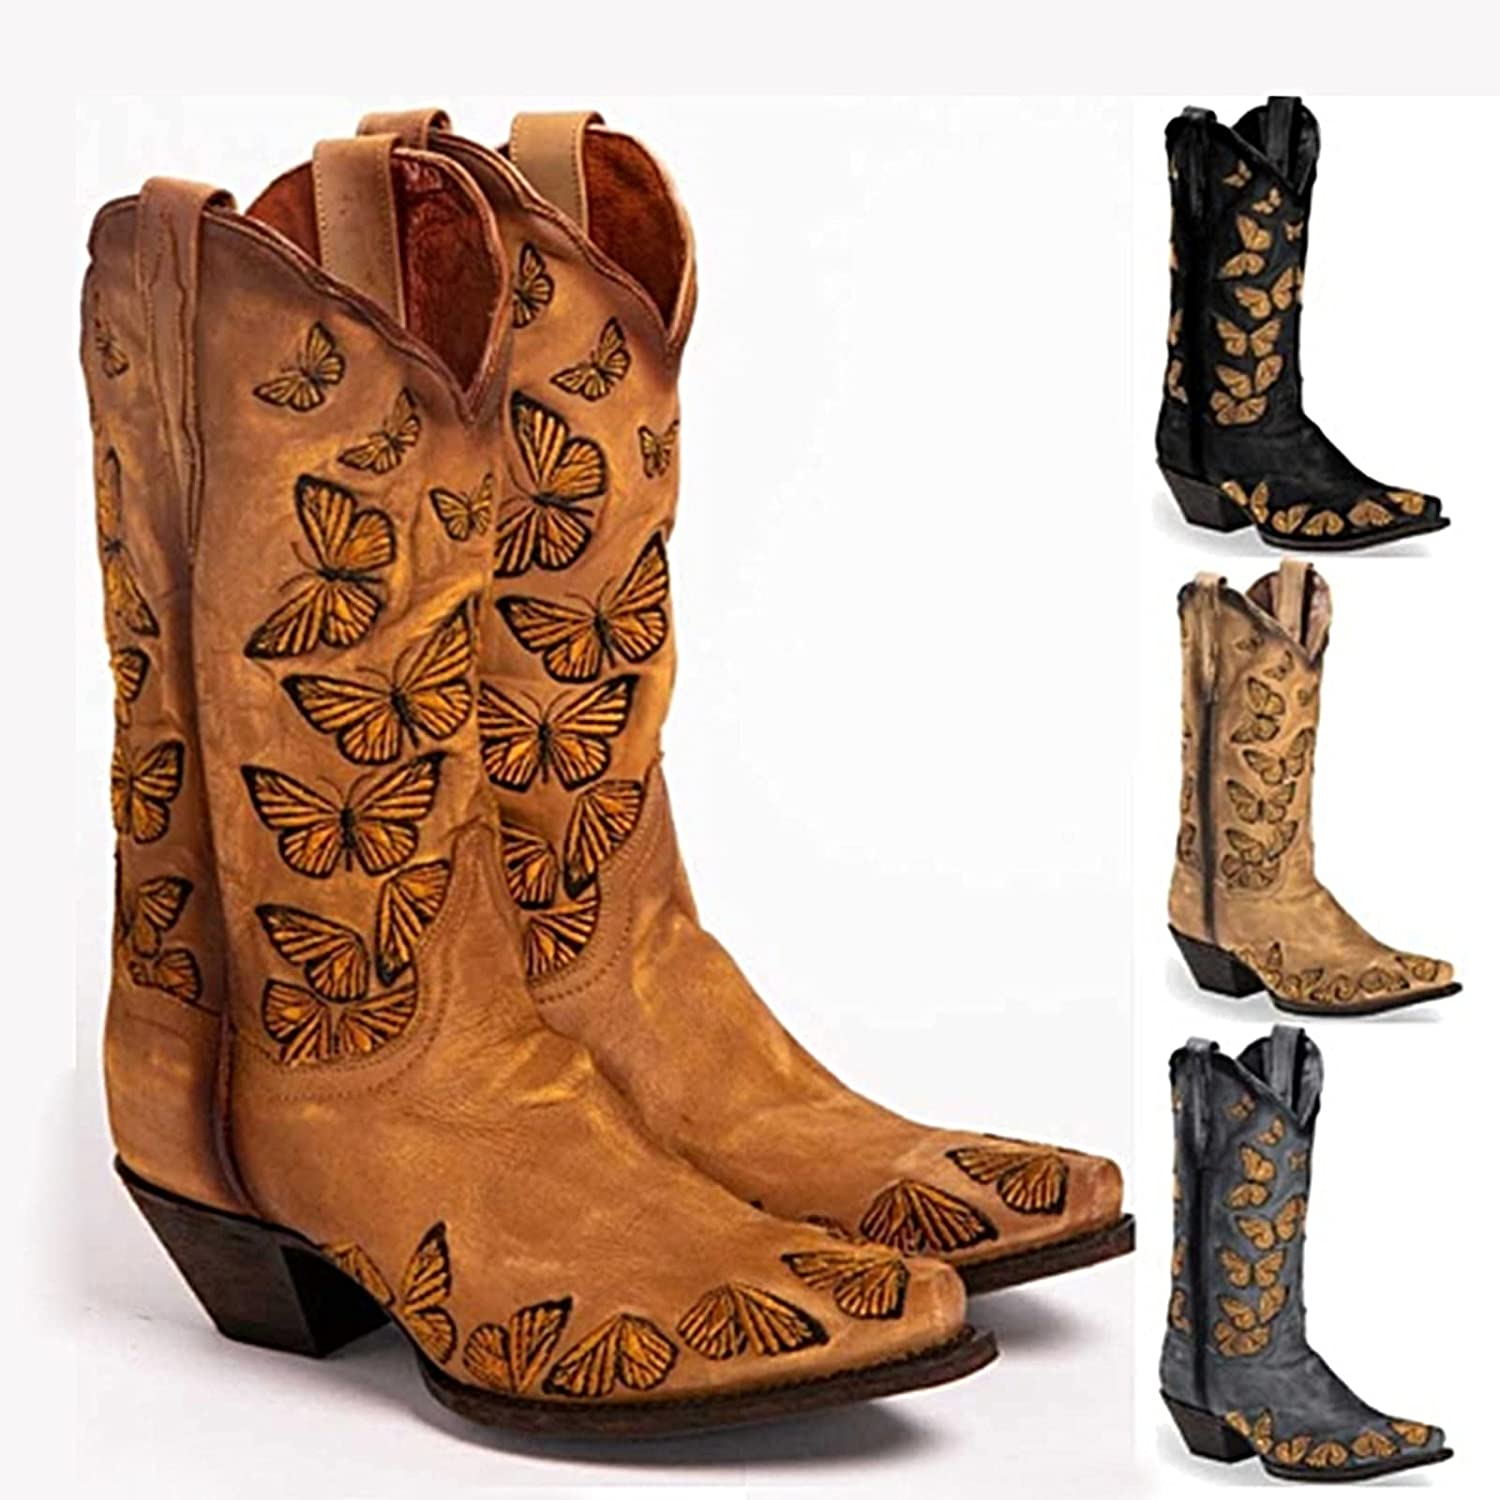 Cowboy Boots for Womens Square Toe Embroidery Low Chunky Heel Pull-Up Tabs Knee High Western Cowgirl Boot National Style Wedding Mid Calf Buckle English Riding Equestrian Boots